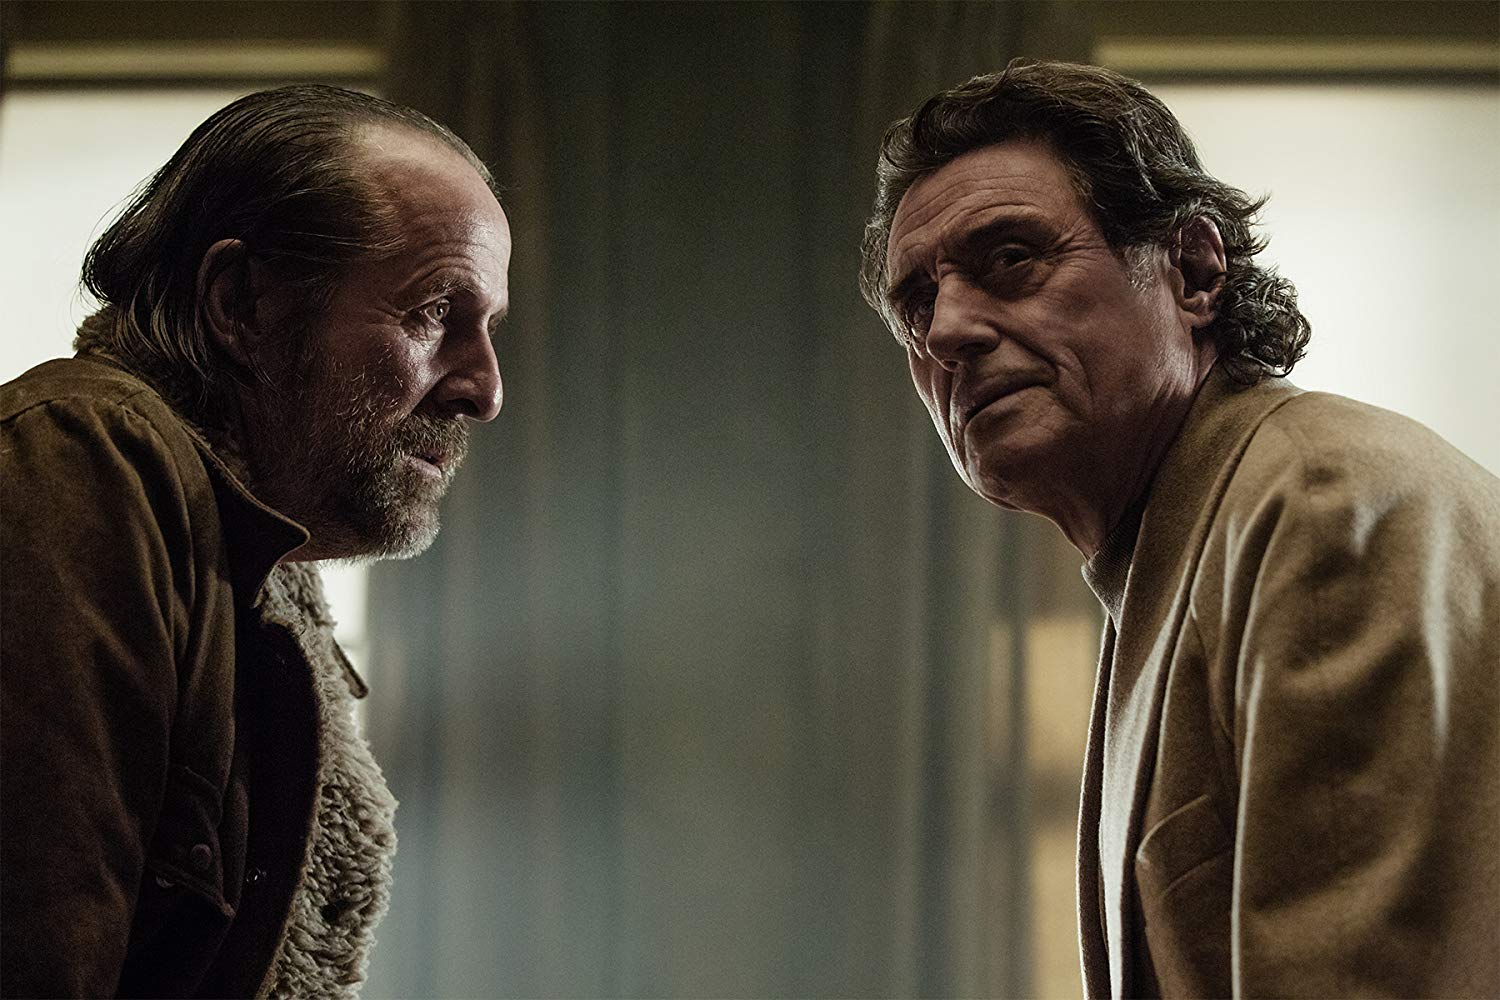 Czernobog and Odin in 'American Gods'. (Source: IMDB)